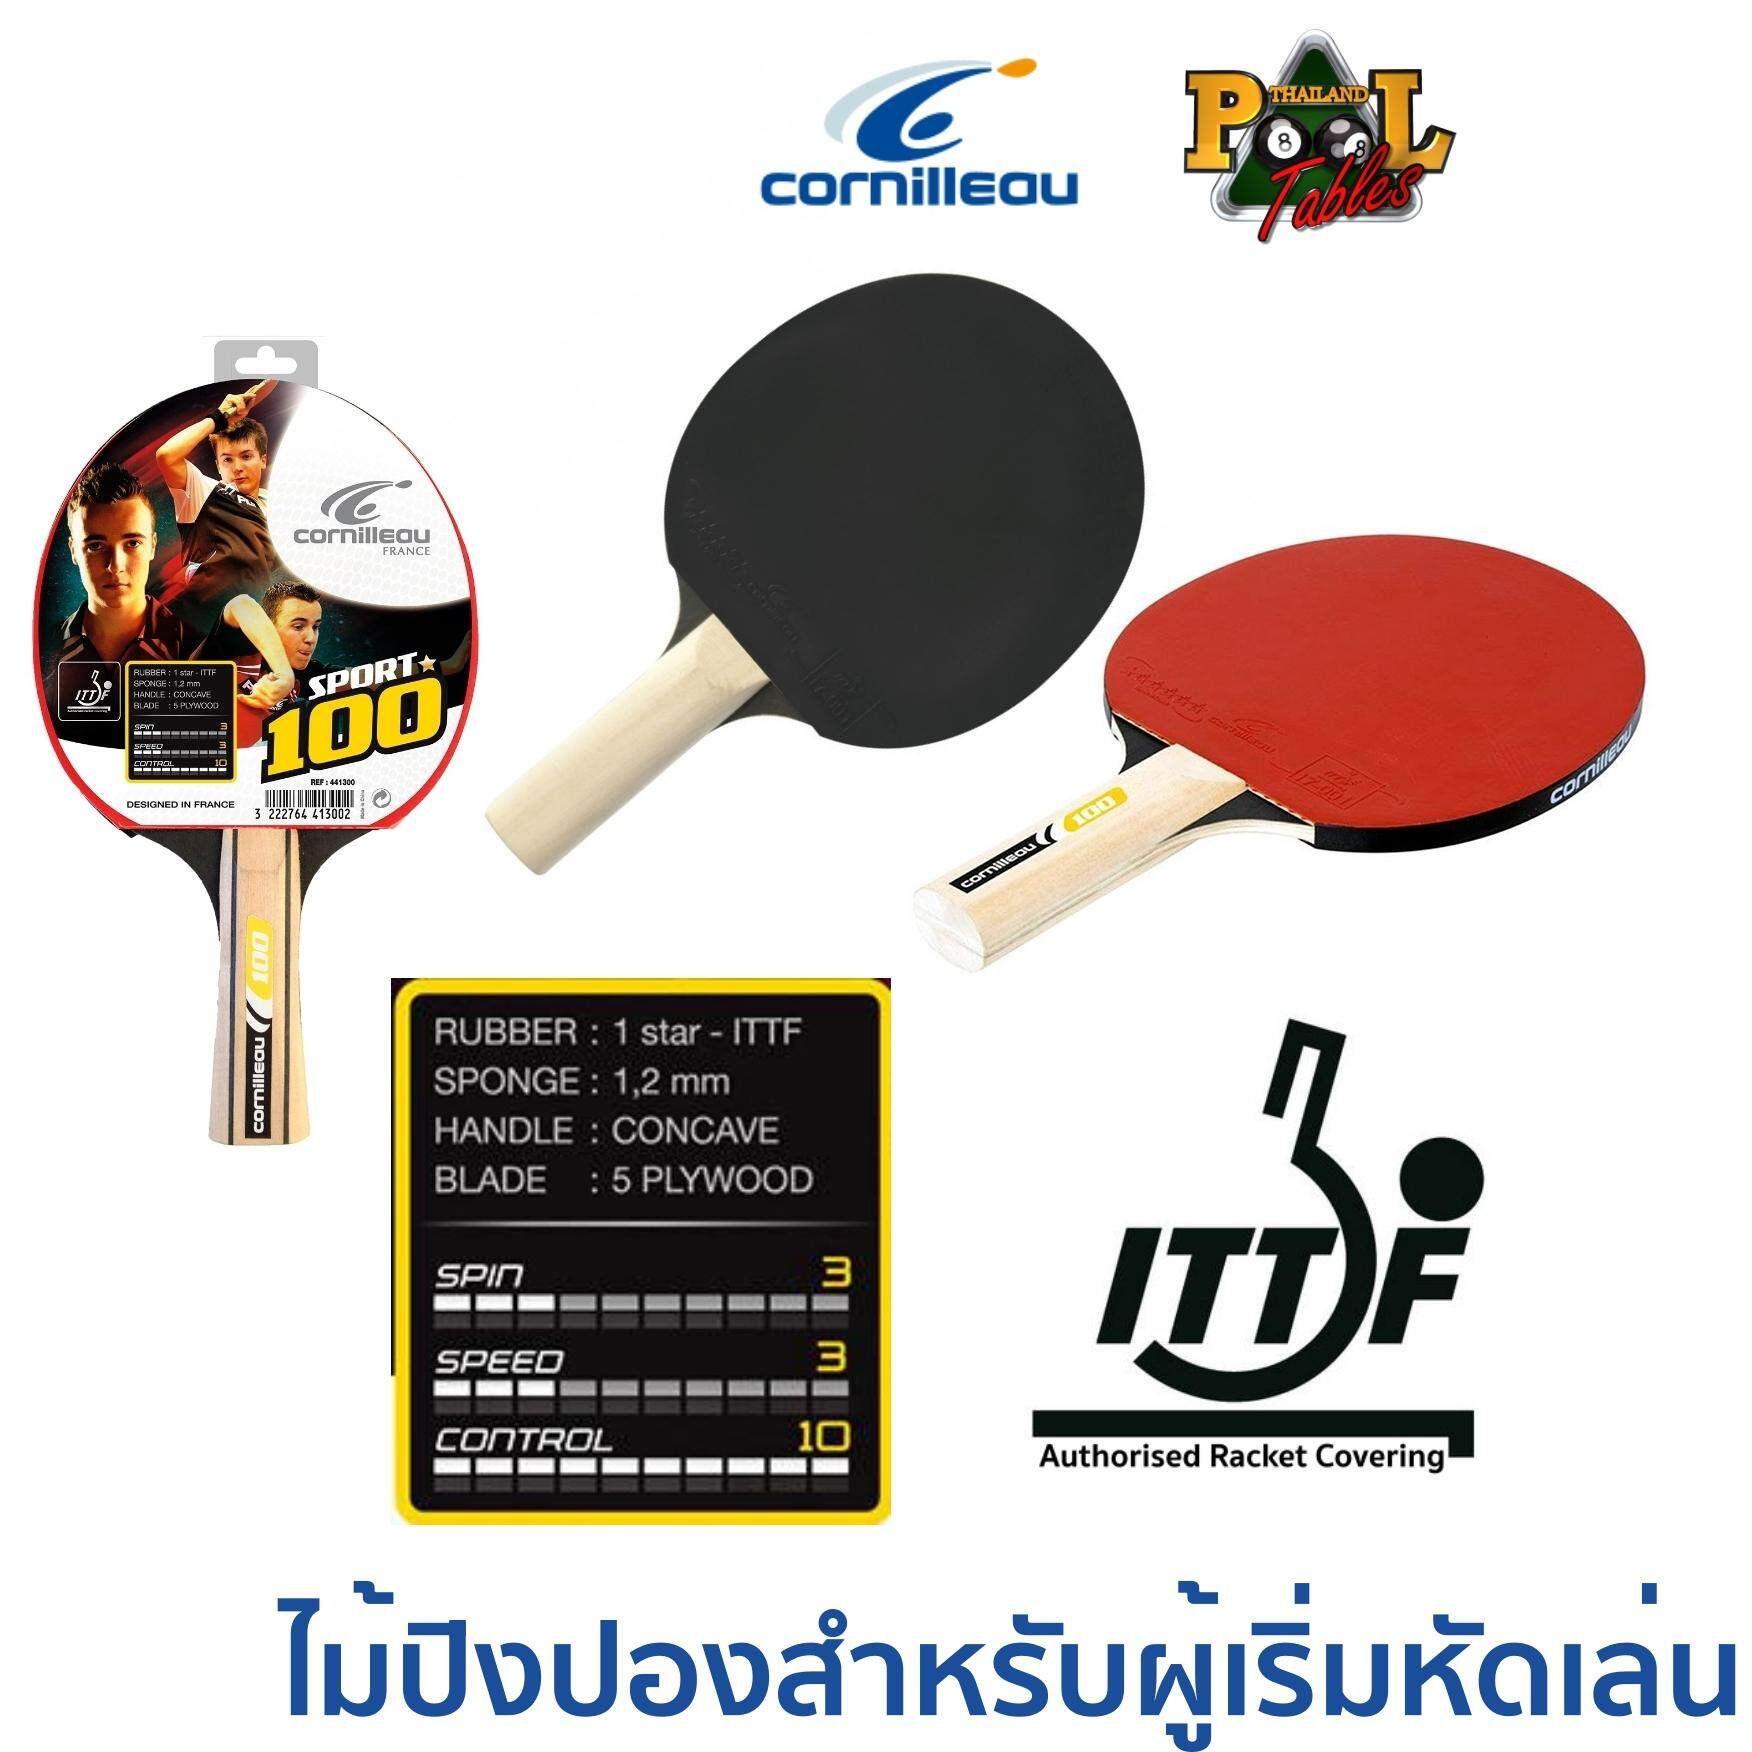 ไม้ปิงปอง Cornilleau Table Bat Sport 100 By Thailand Pool Tables.